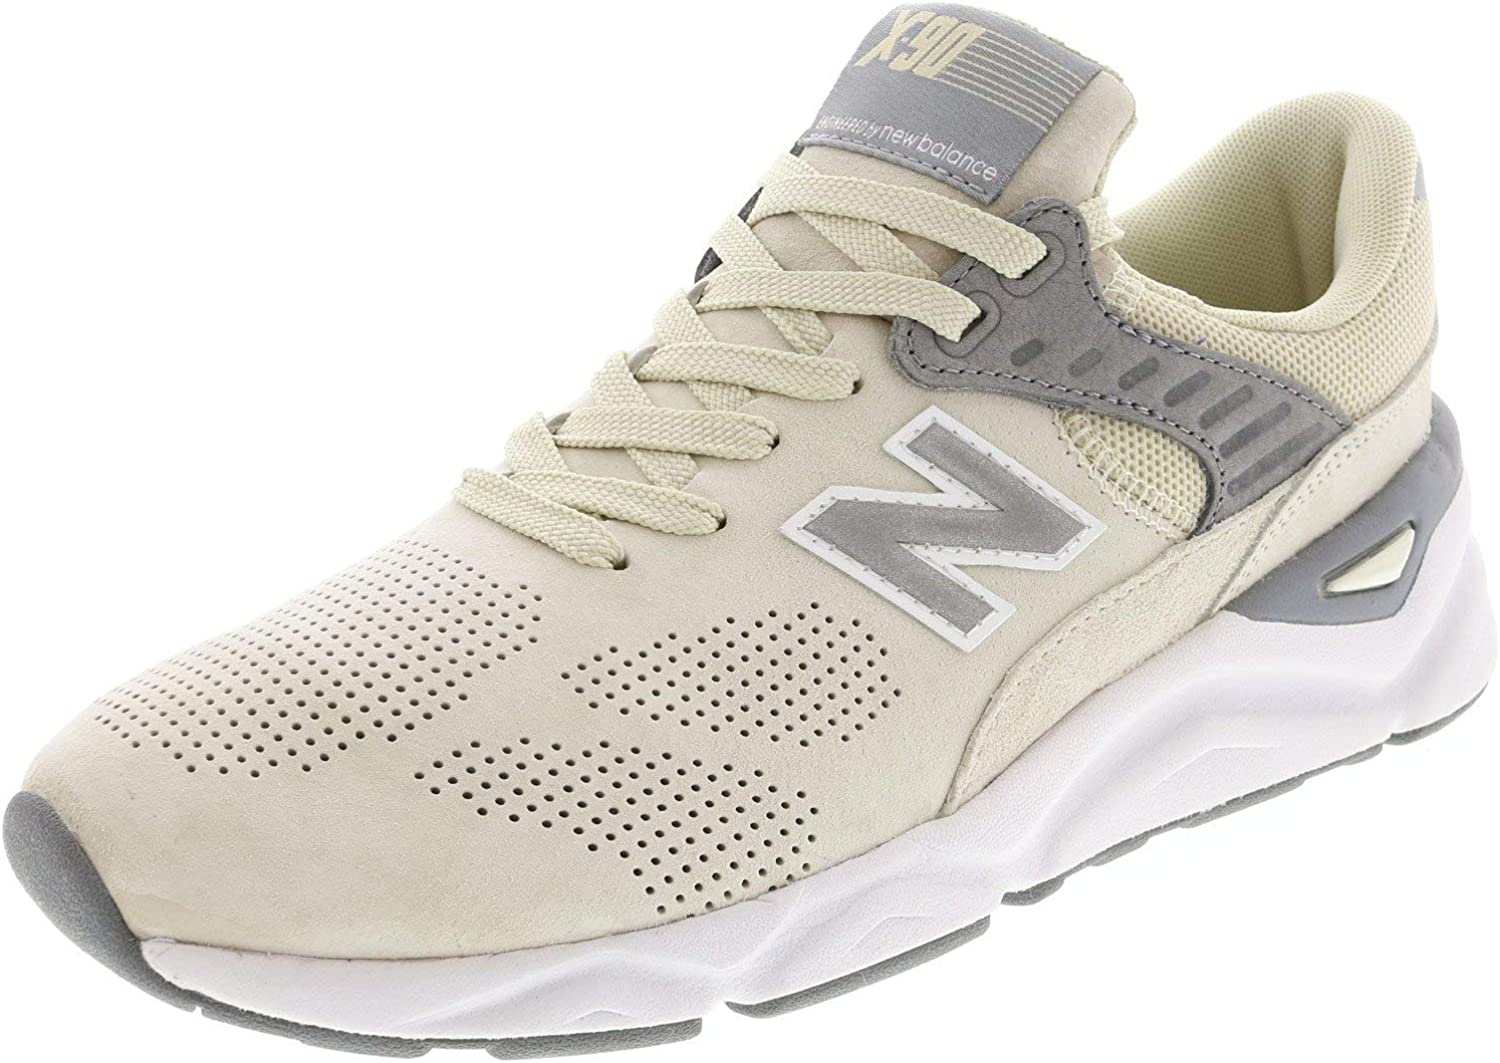 New Balance Women's Wsx90 Ankle-High Leather Fashion Sneaker